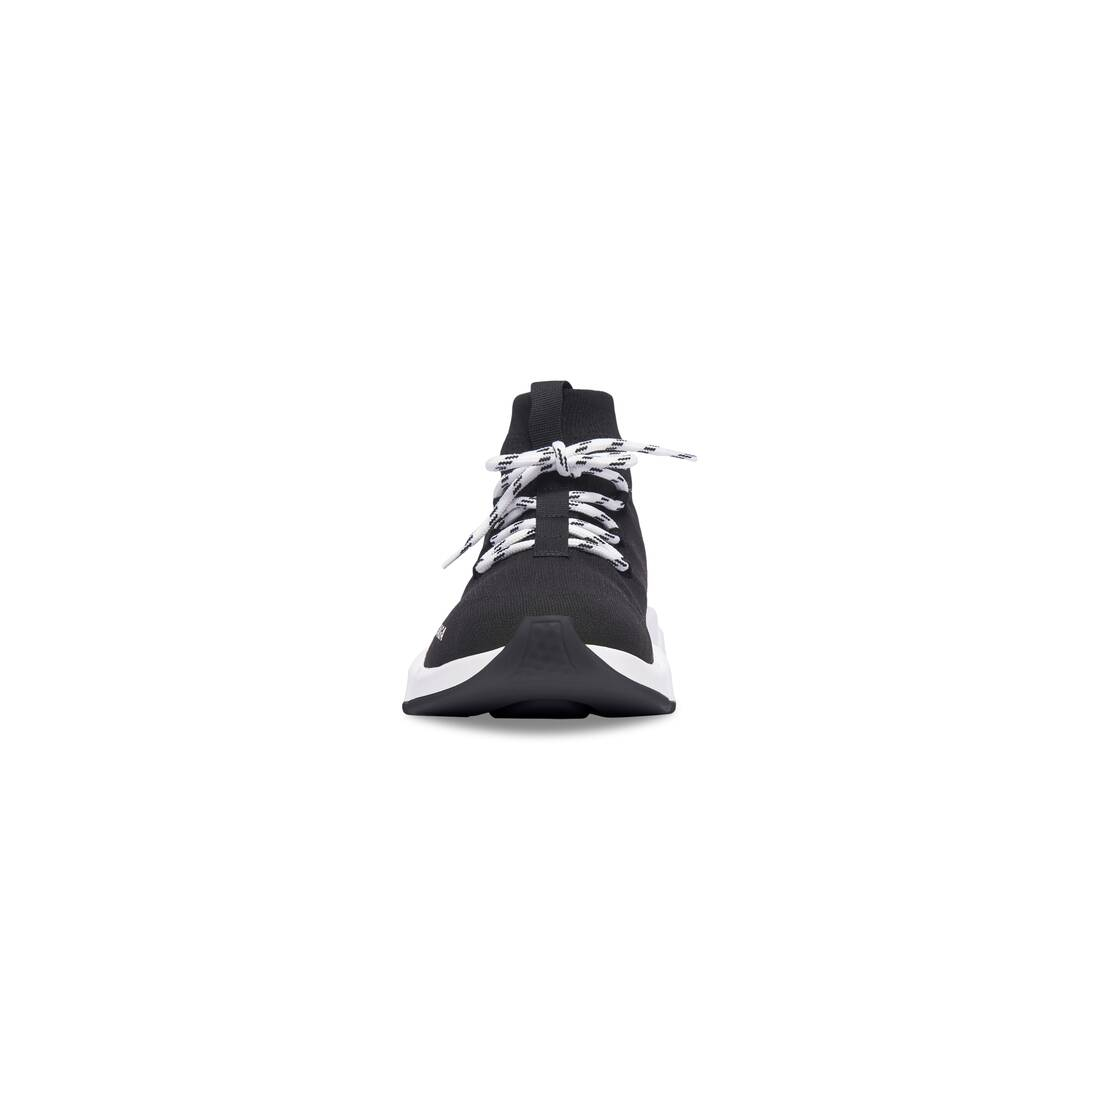 Display zoomed version of speed lace-up sneaker 3